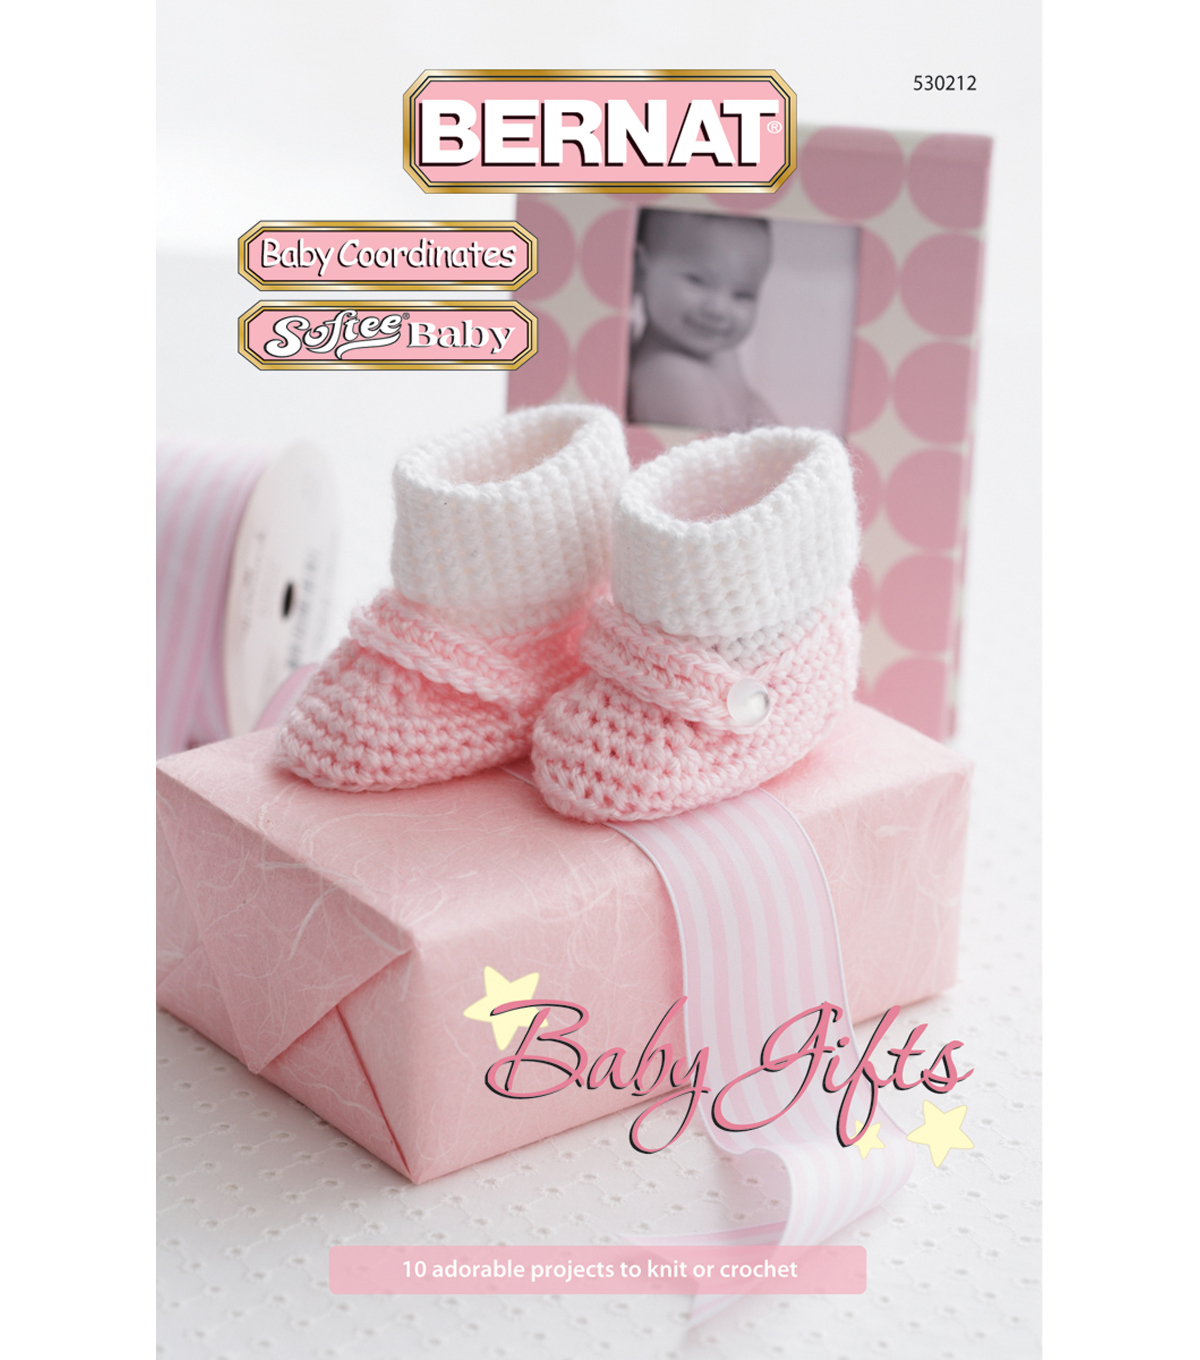 Baby Gifts-Softee & Baby Coordinates